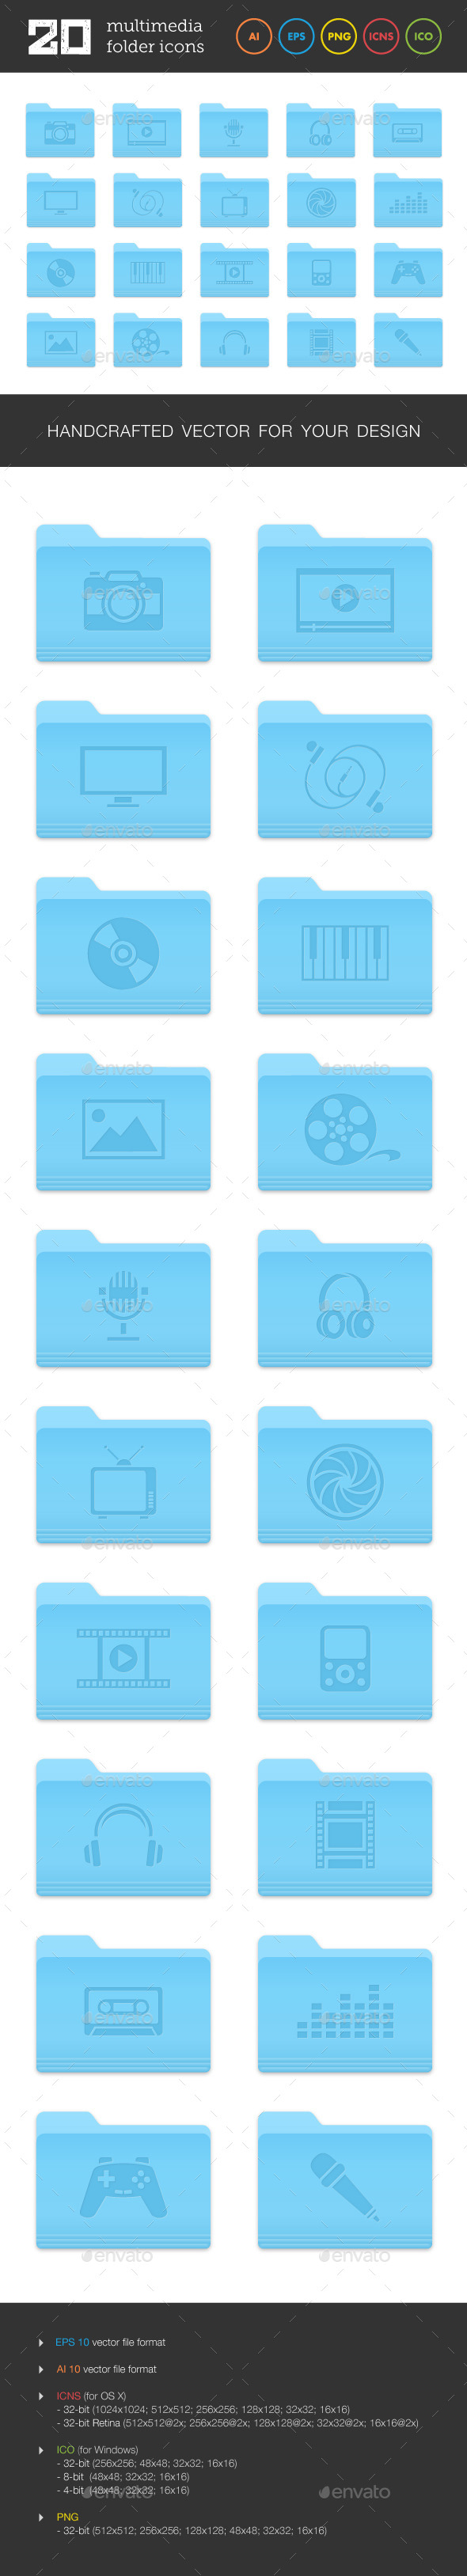 Multimedia Folder Icons Set - Media Icons